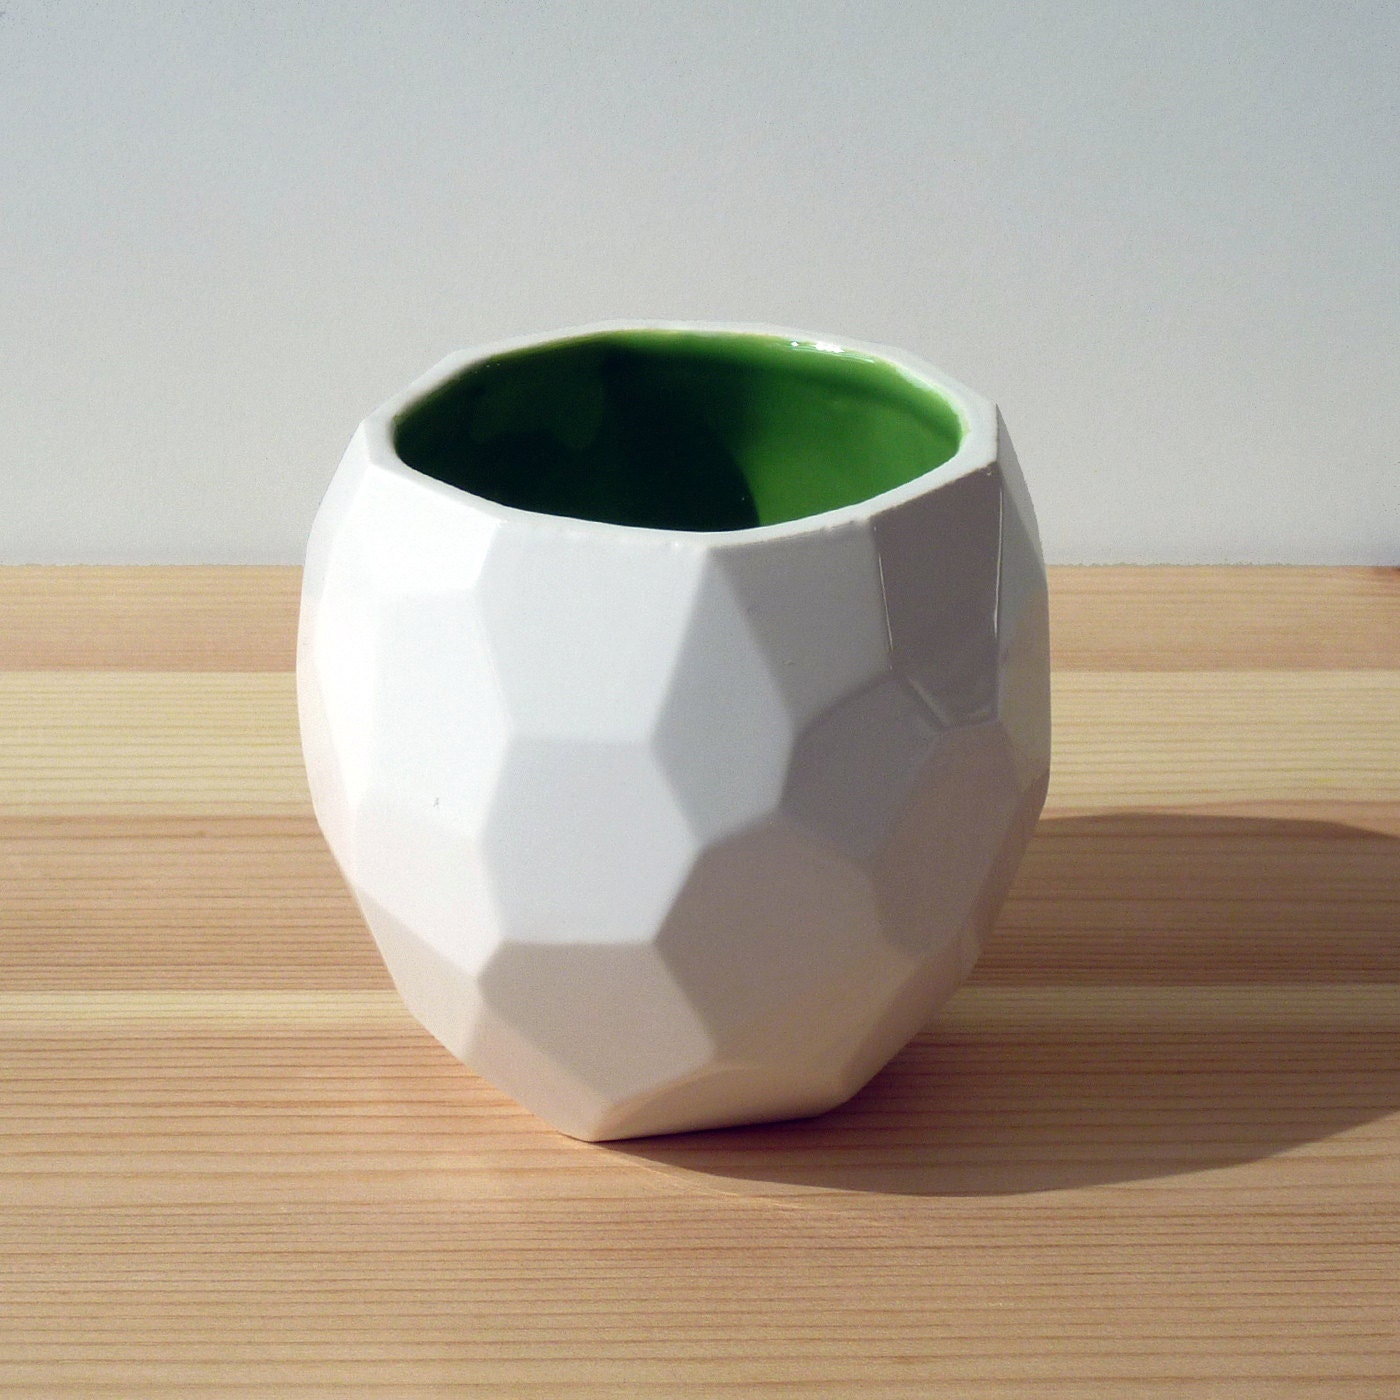 Modern ceramic cup handmade in polygons - Poligon Cup - polygon faceted medium mug - Green - studioLORIER